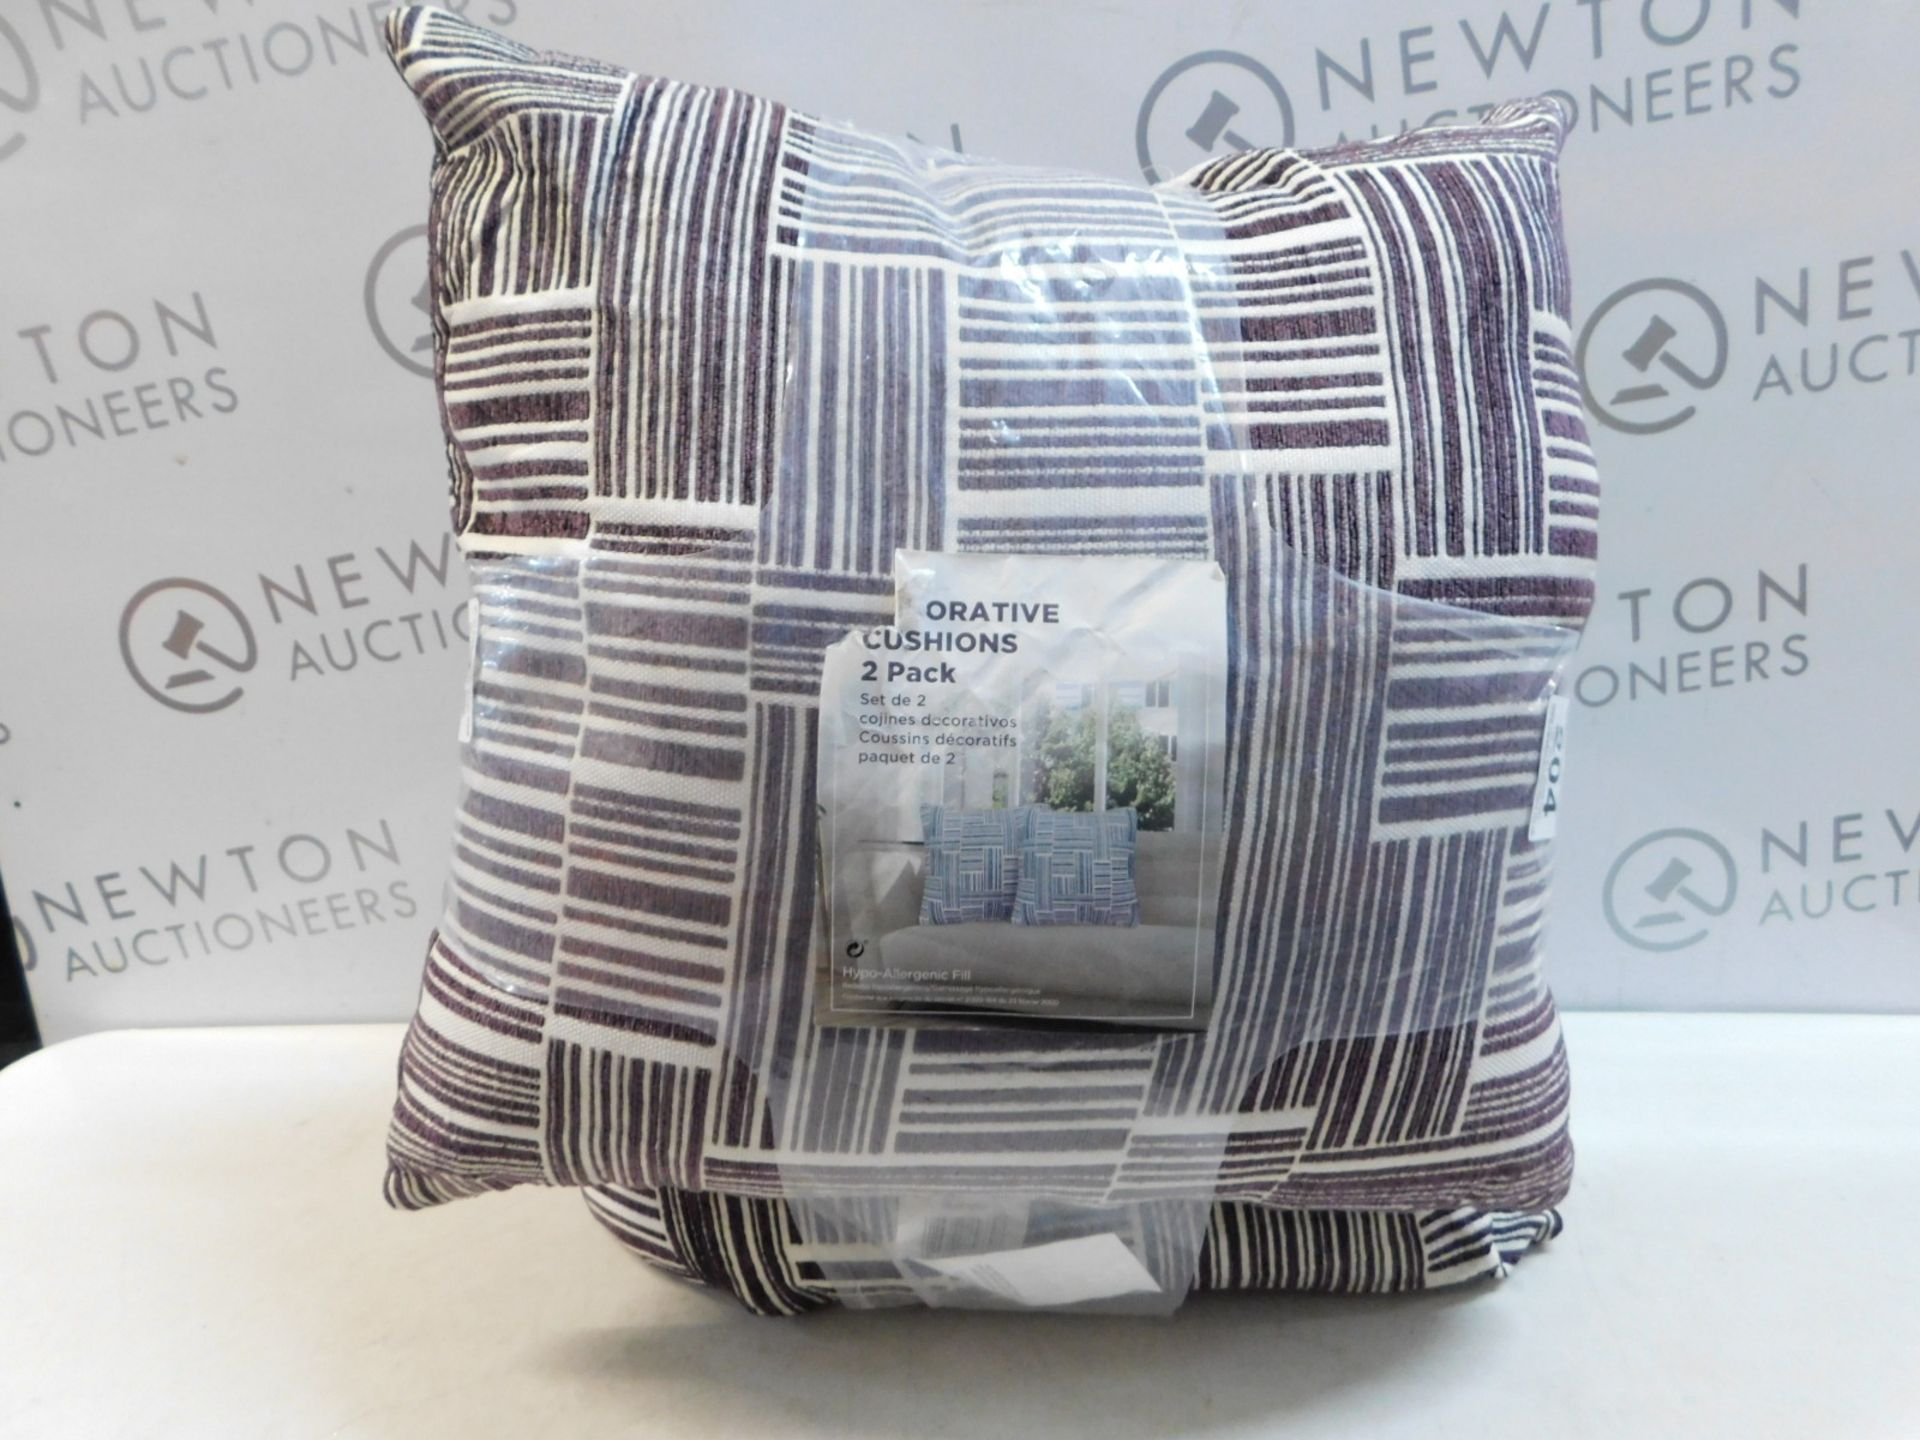 Lot 117 - 1 PAIR OF ARLEE HOME FASHION PATTERNED CUSHIONS RRP £39.99